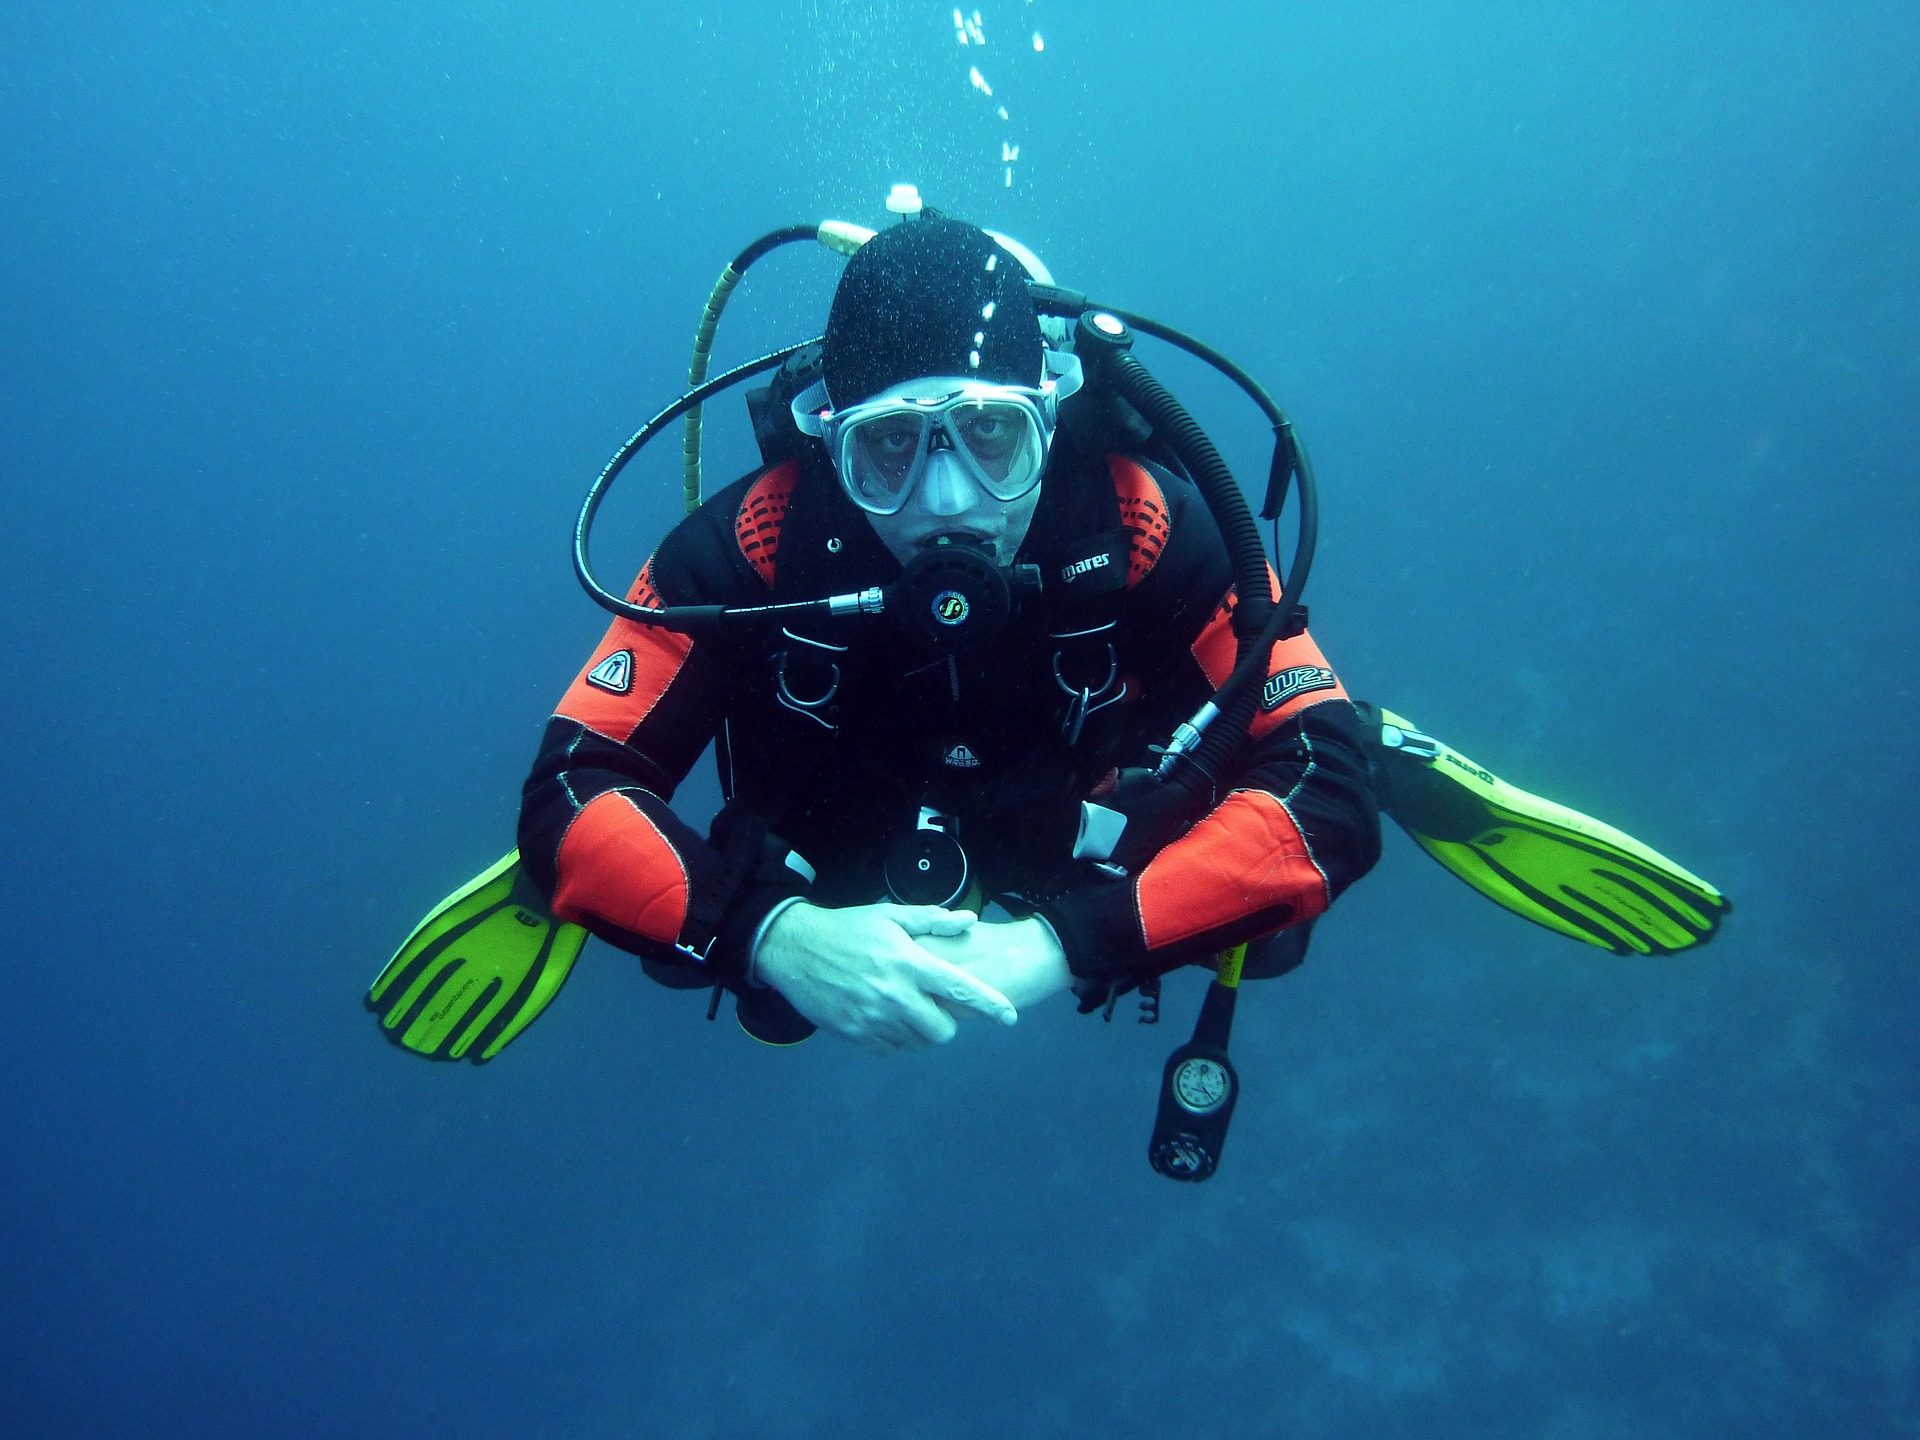 Cheapest places in the world to become a certified scuba diver by cheapest places in the world to become a certified scuba diver by trisha singh tripoto xflitez Choice Image